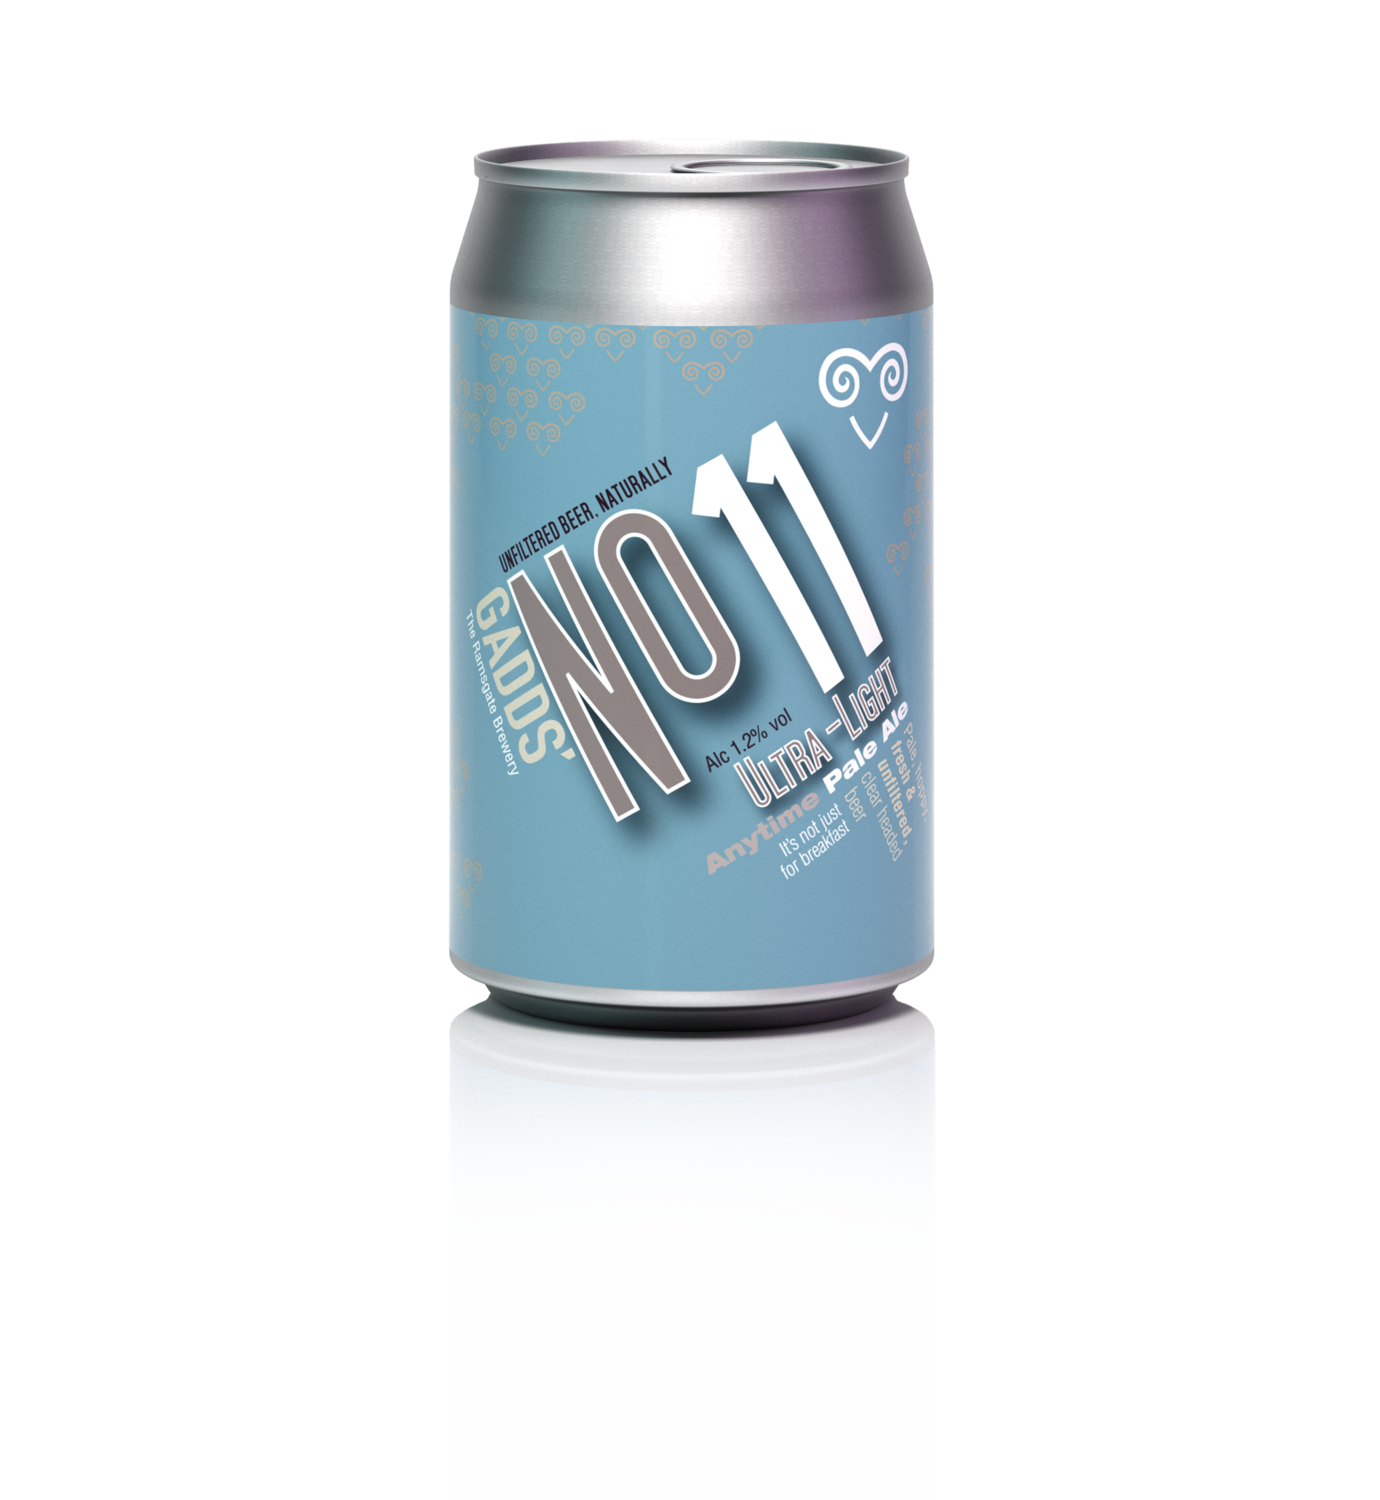 GADDS' No 11 Ultra Light Anytime Pale Ale x12 cans